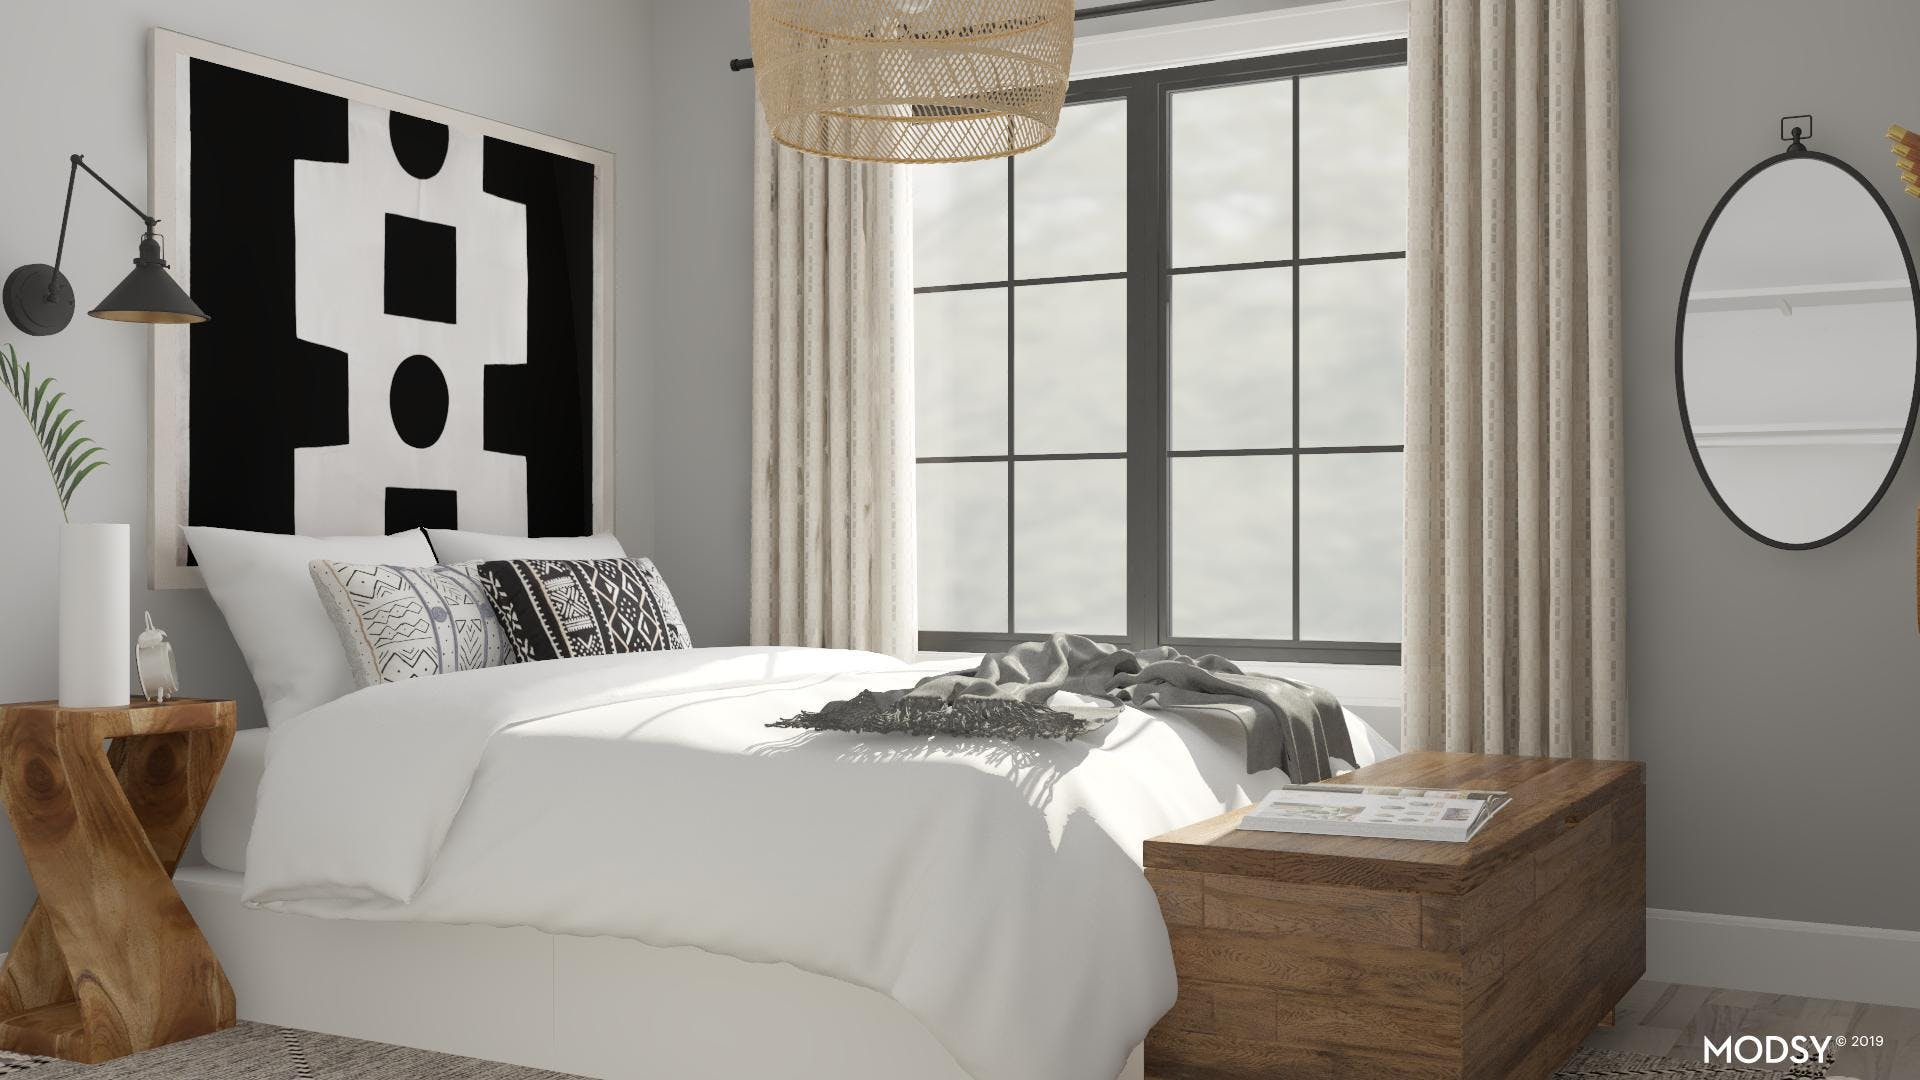 Exciting Black and White Bedroom